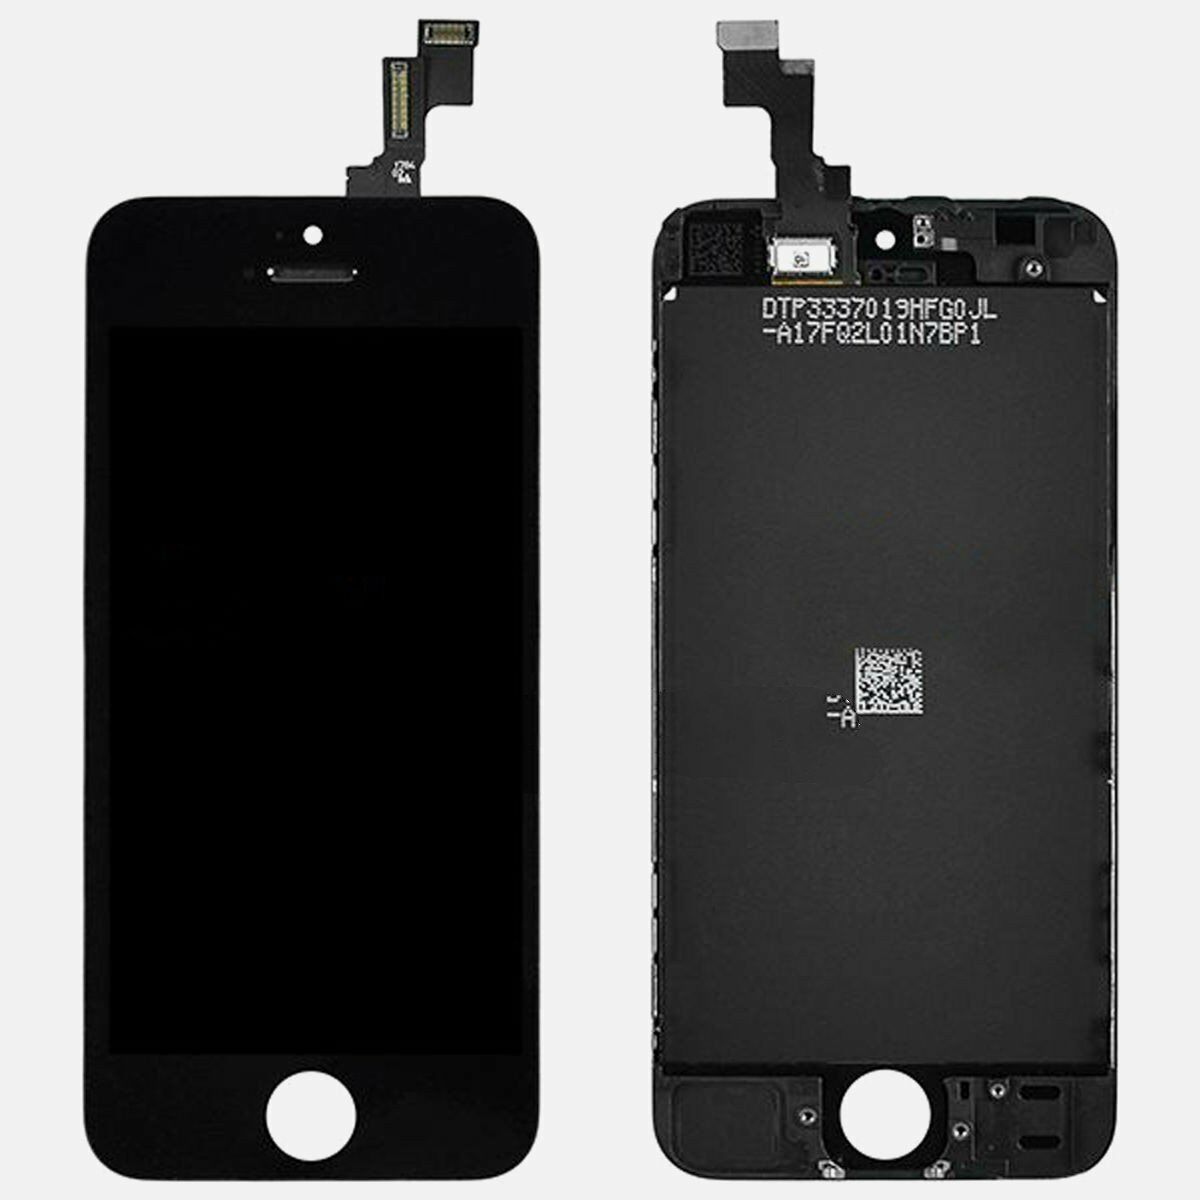 OEM Replacement Touch Screen Digitizer +LCD Display Assembly for iPhone 5 5C 5S